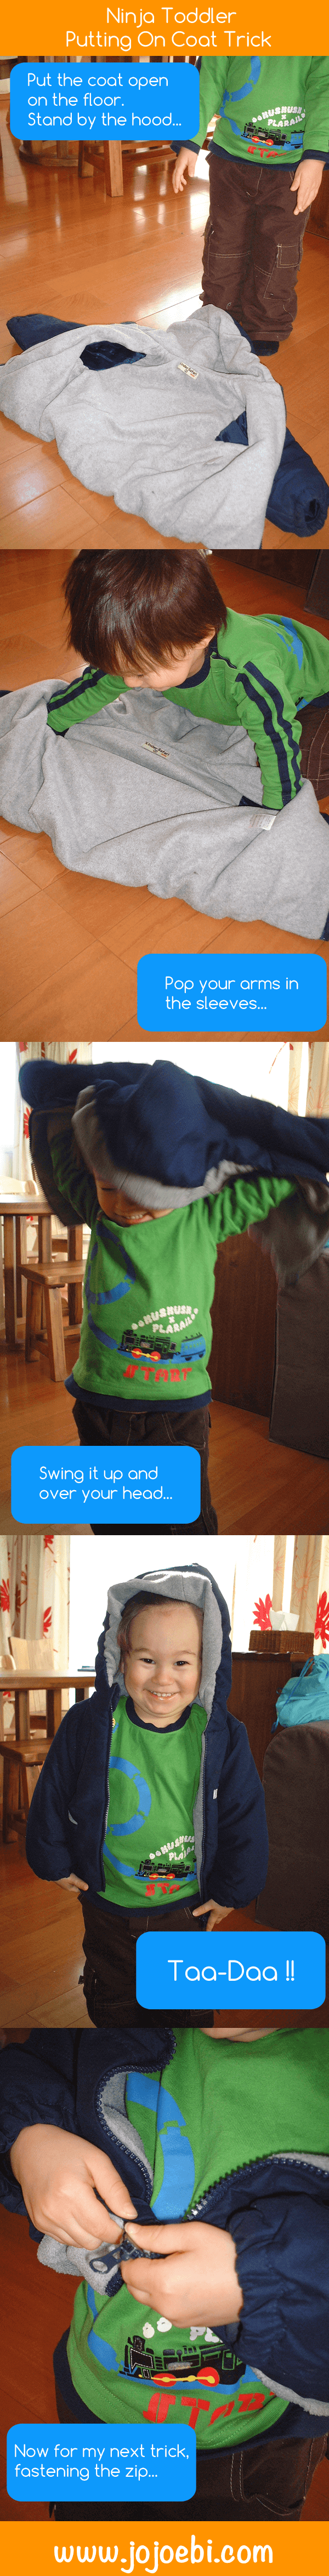 toddler putting on his coat by himself